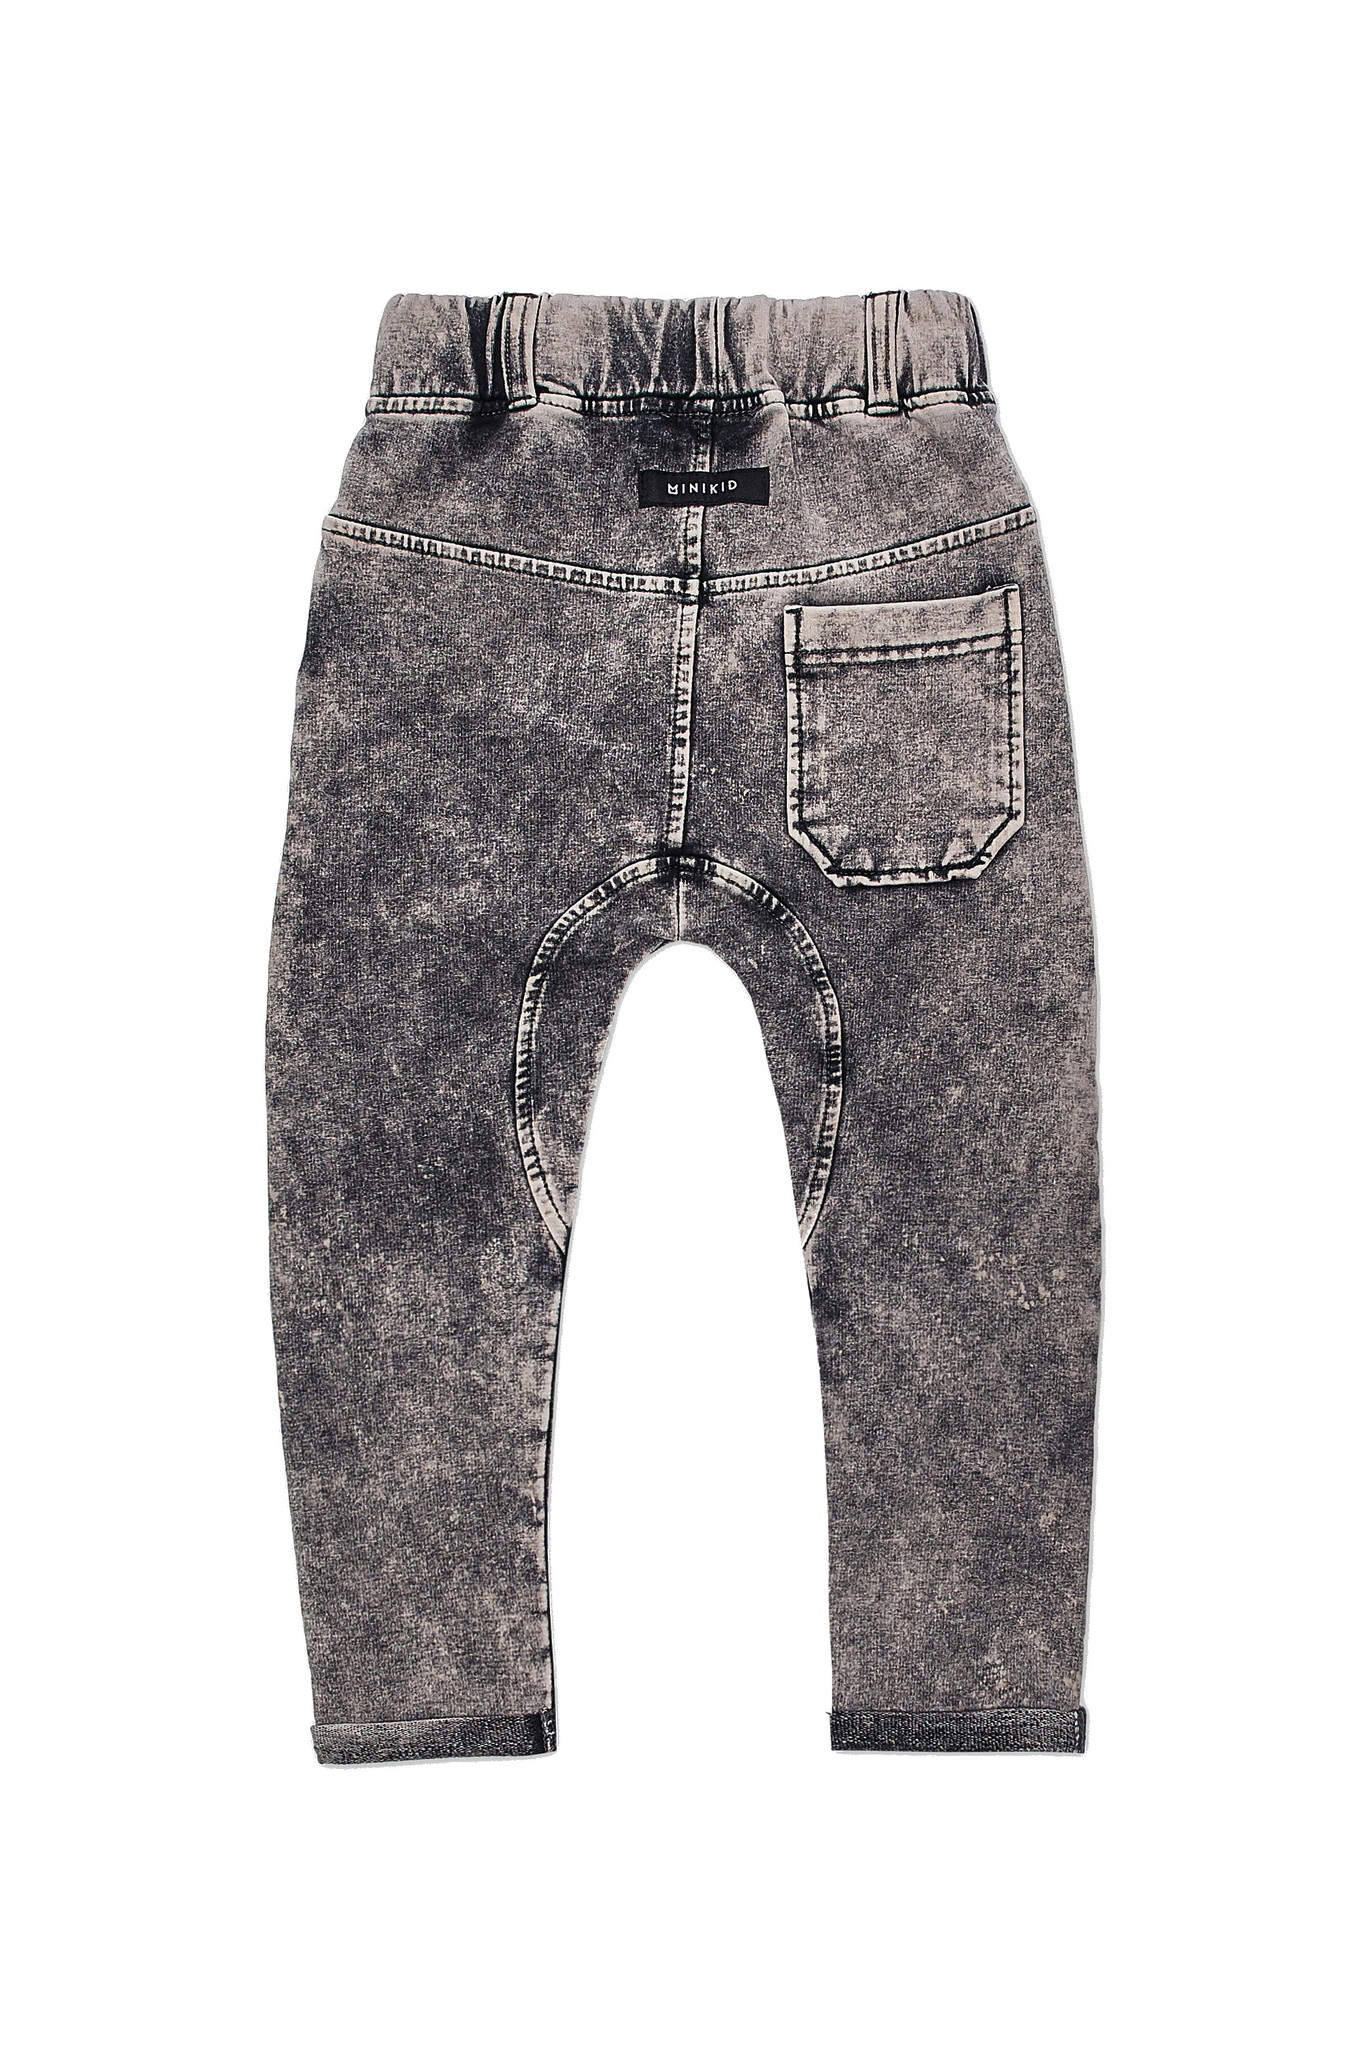 Minikid GREY JEANS | COOL JOGGER WITH WASHING | CHILDREN'S CLOTHING ONLINE